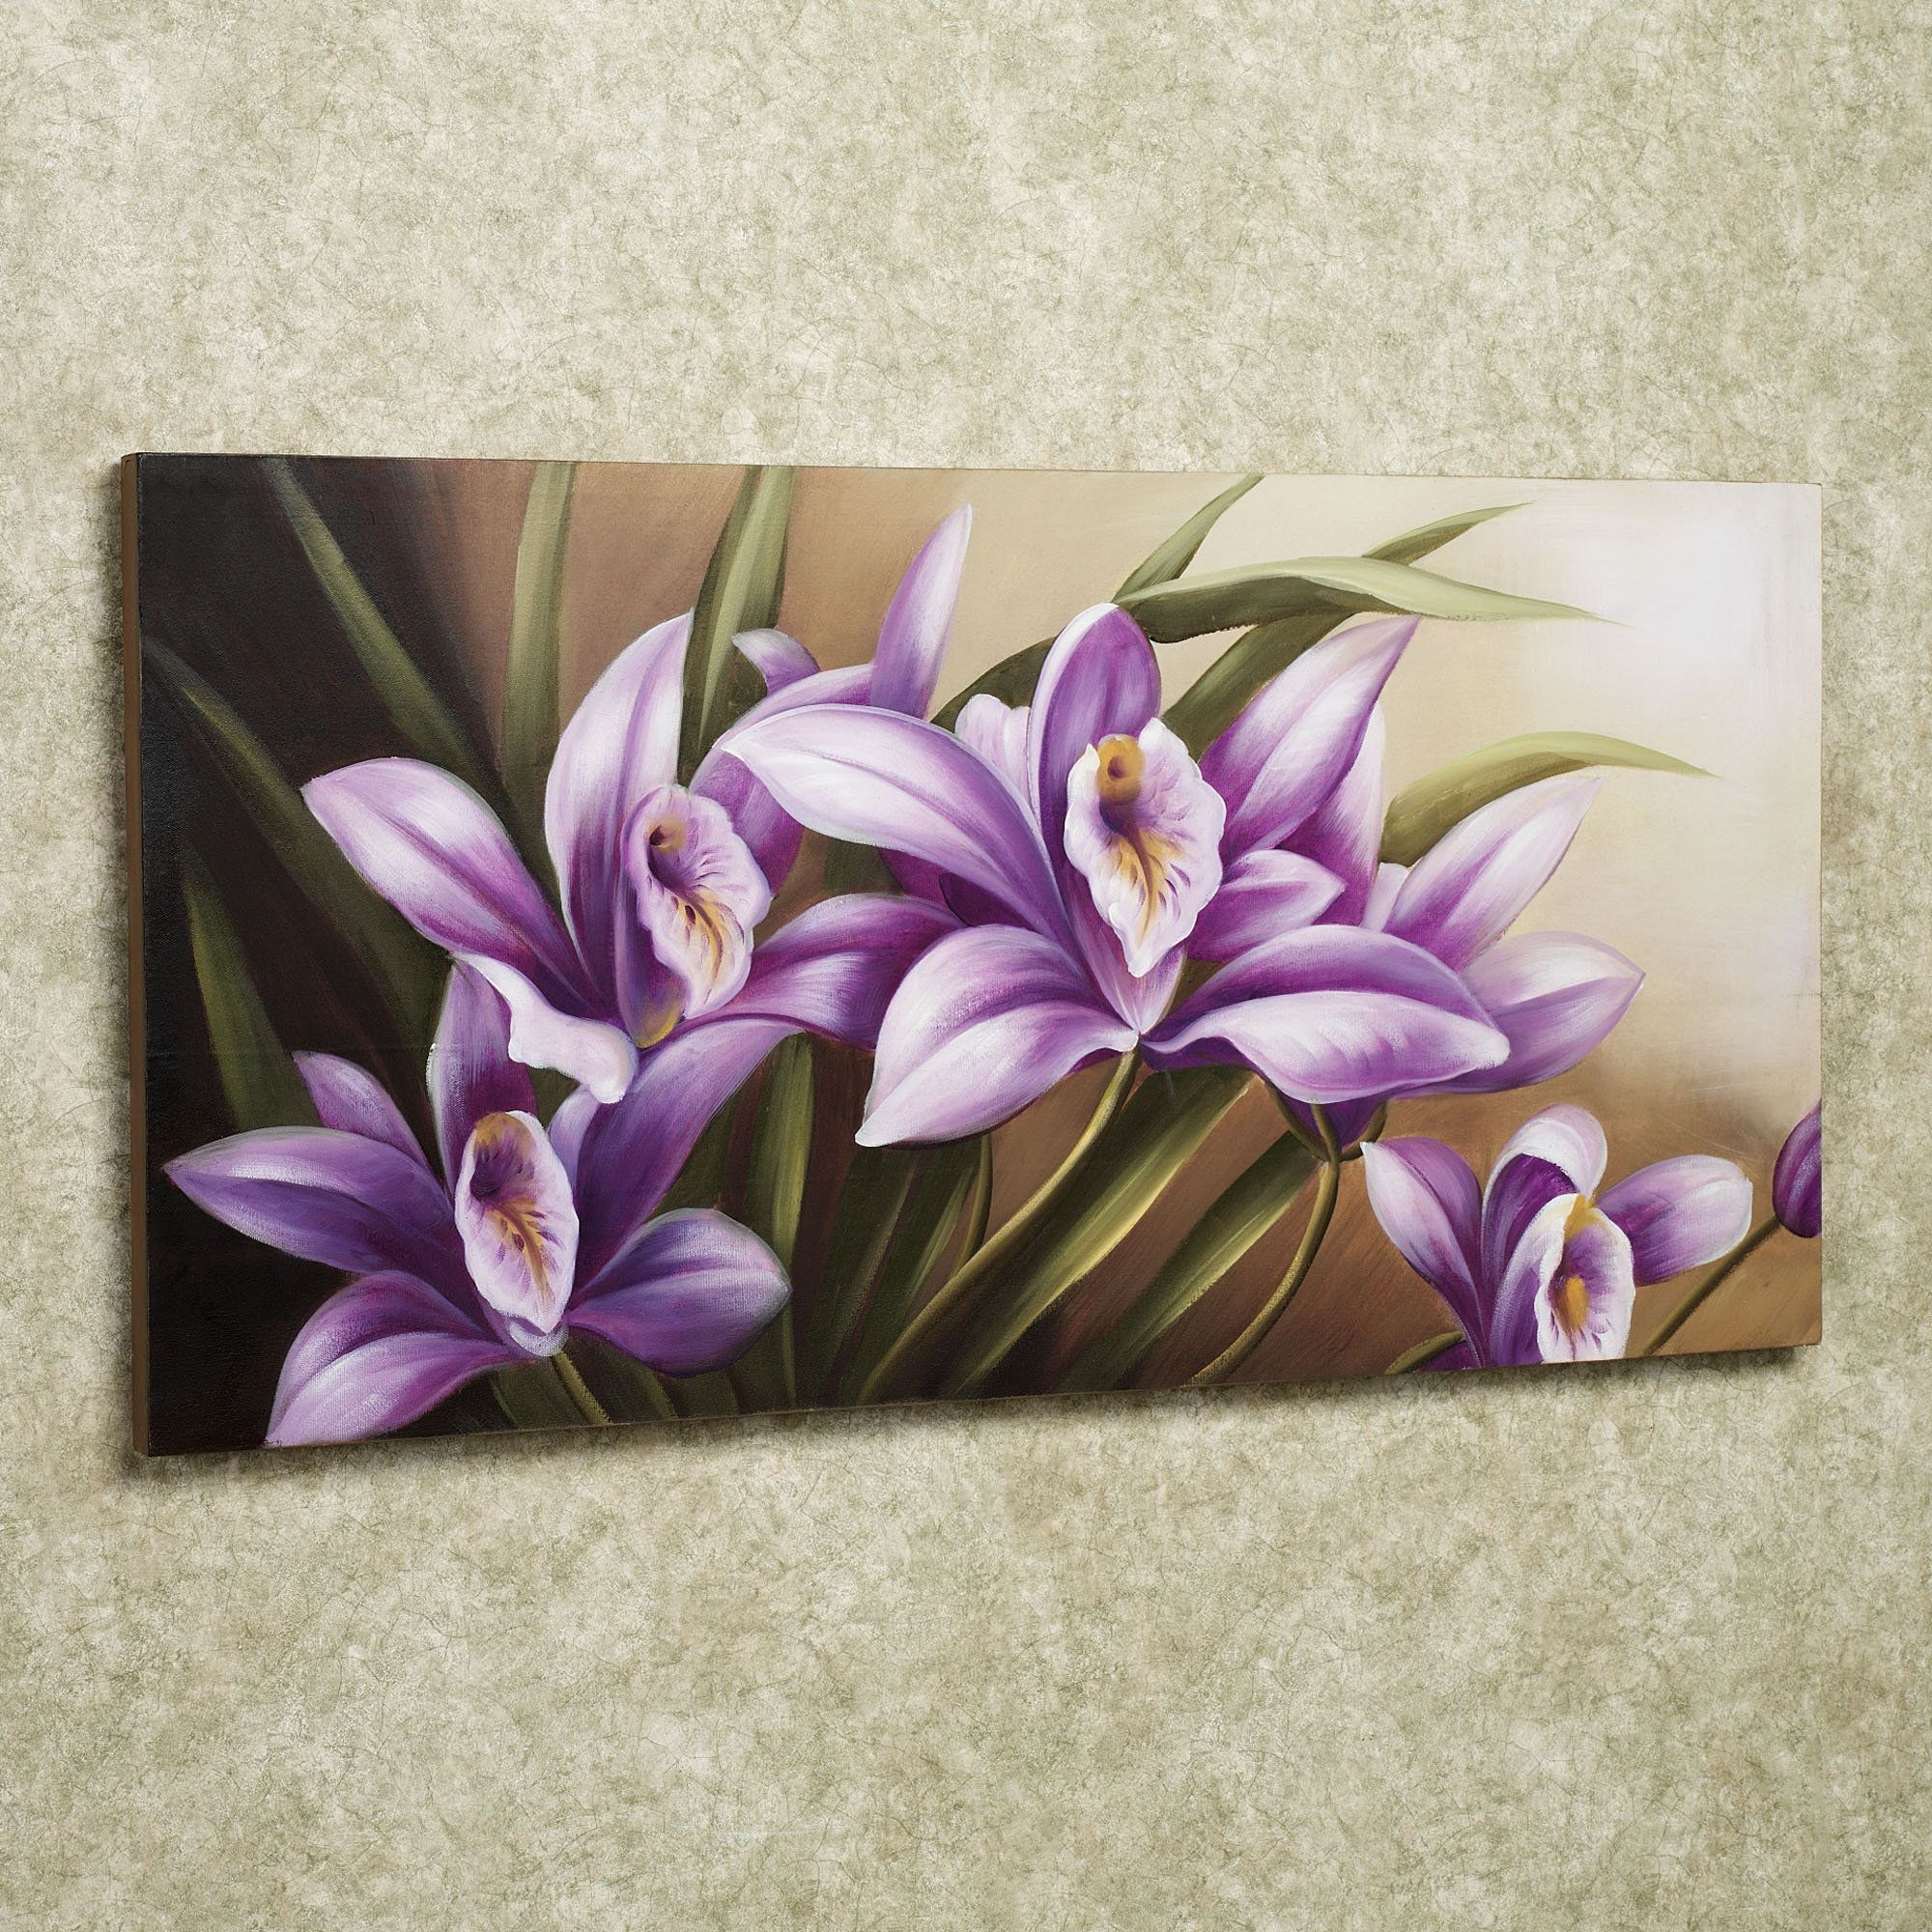 Wild Orchid Handpainted Floral Canvas Wall Art Con Imagenes